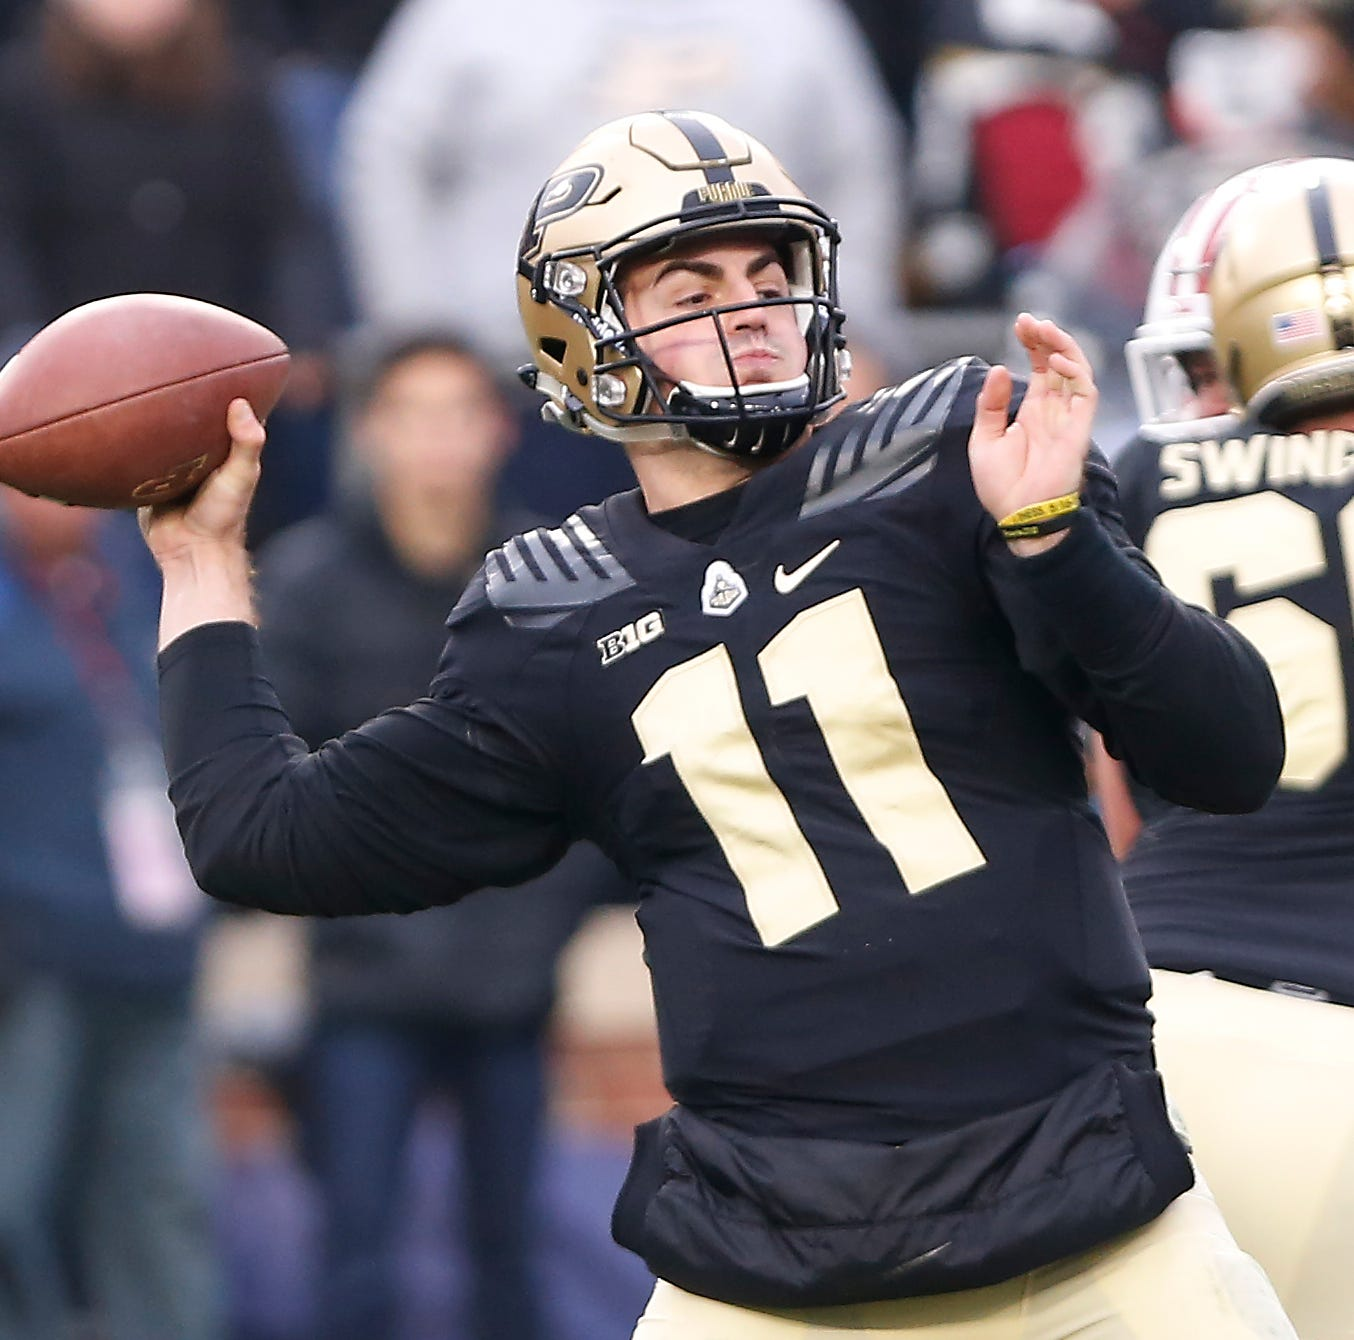 Purdue 27, Wisconsin 13, 4th | Live updates